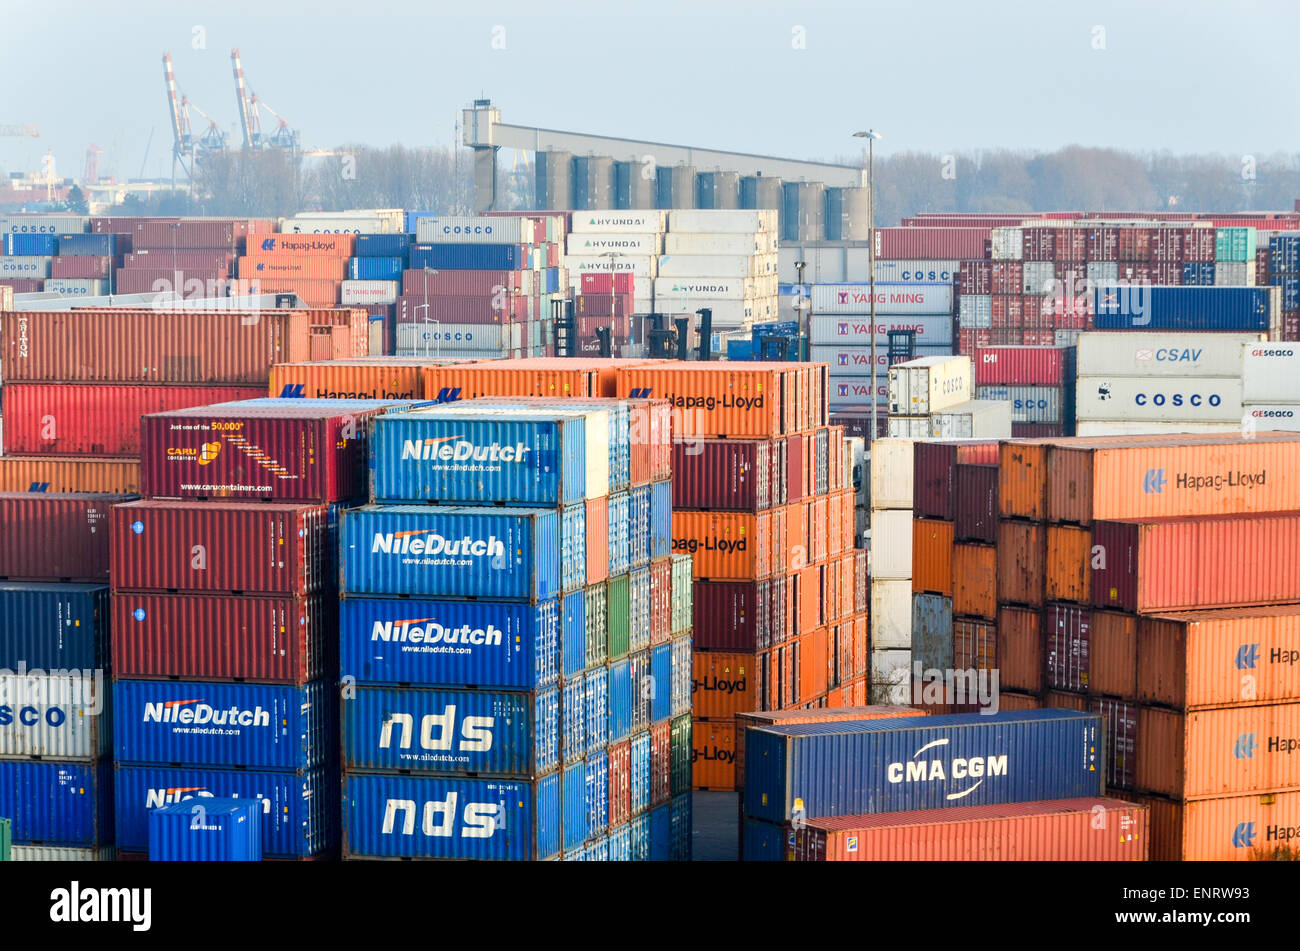 Piles of containers in the port of Rotterdam, Netherlands - Stock Image